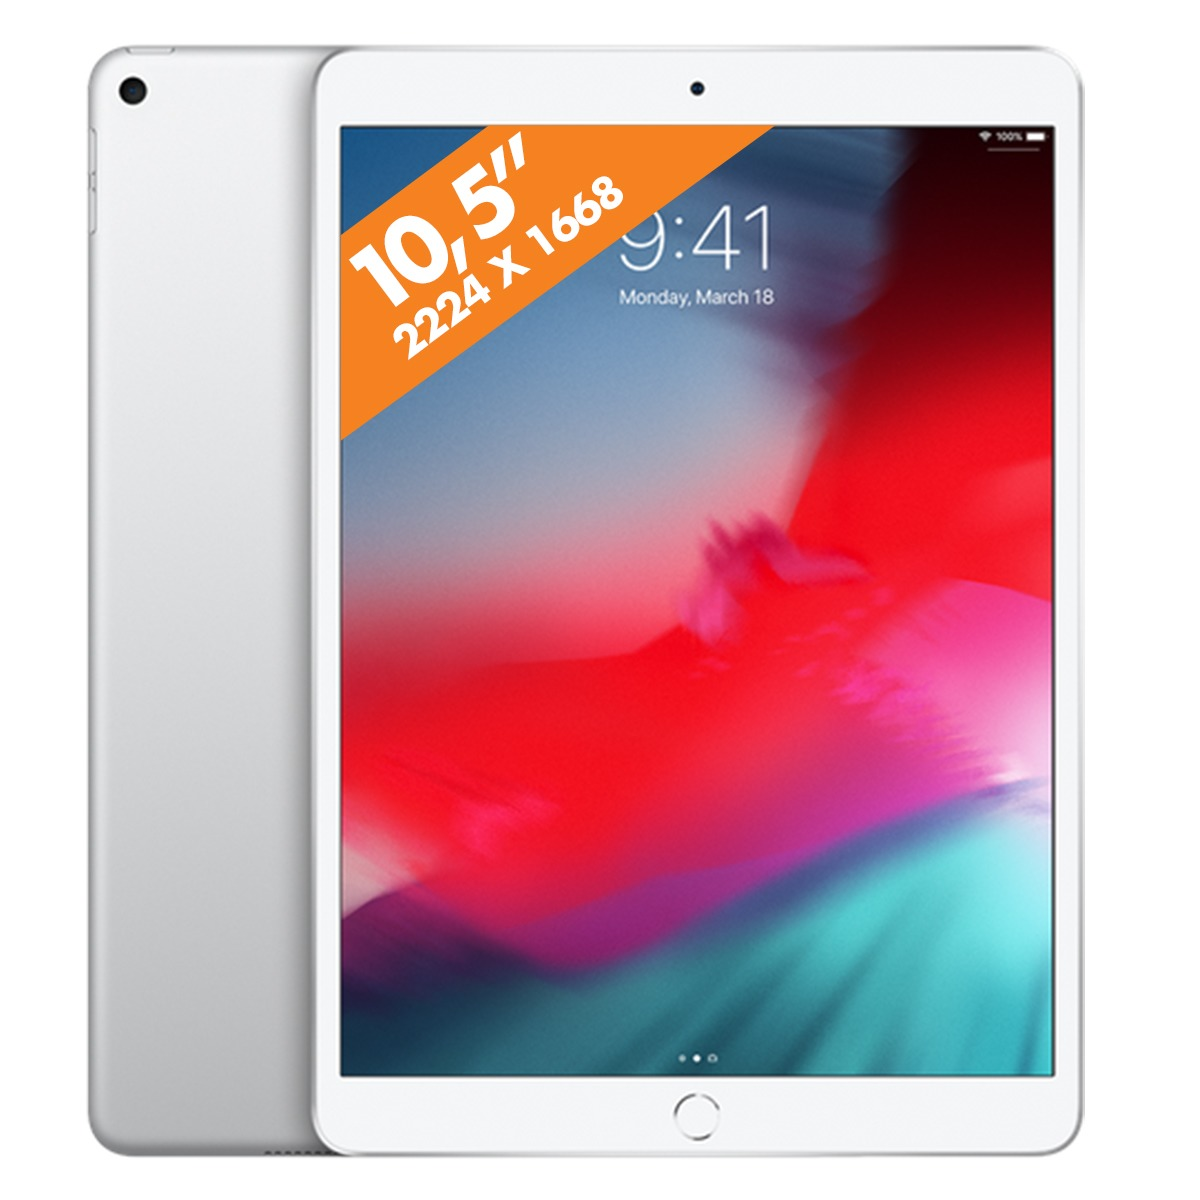 Apple iPad Air (2019) 64GB WiFi Tablet